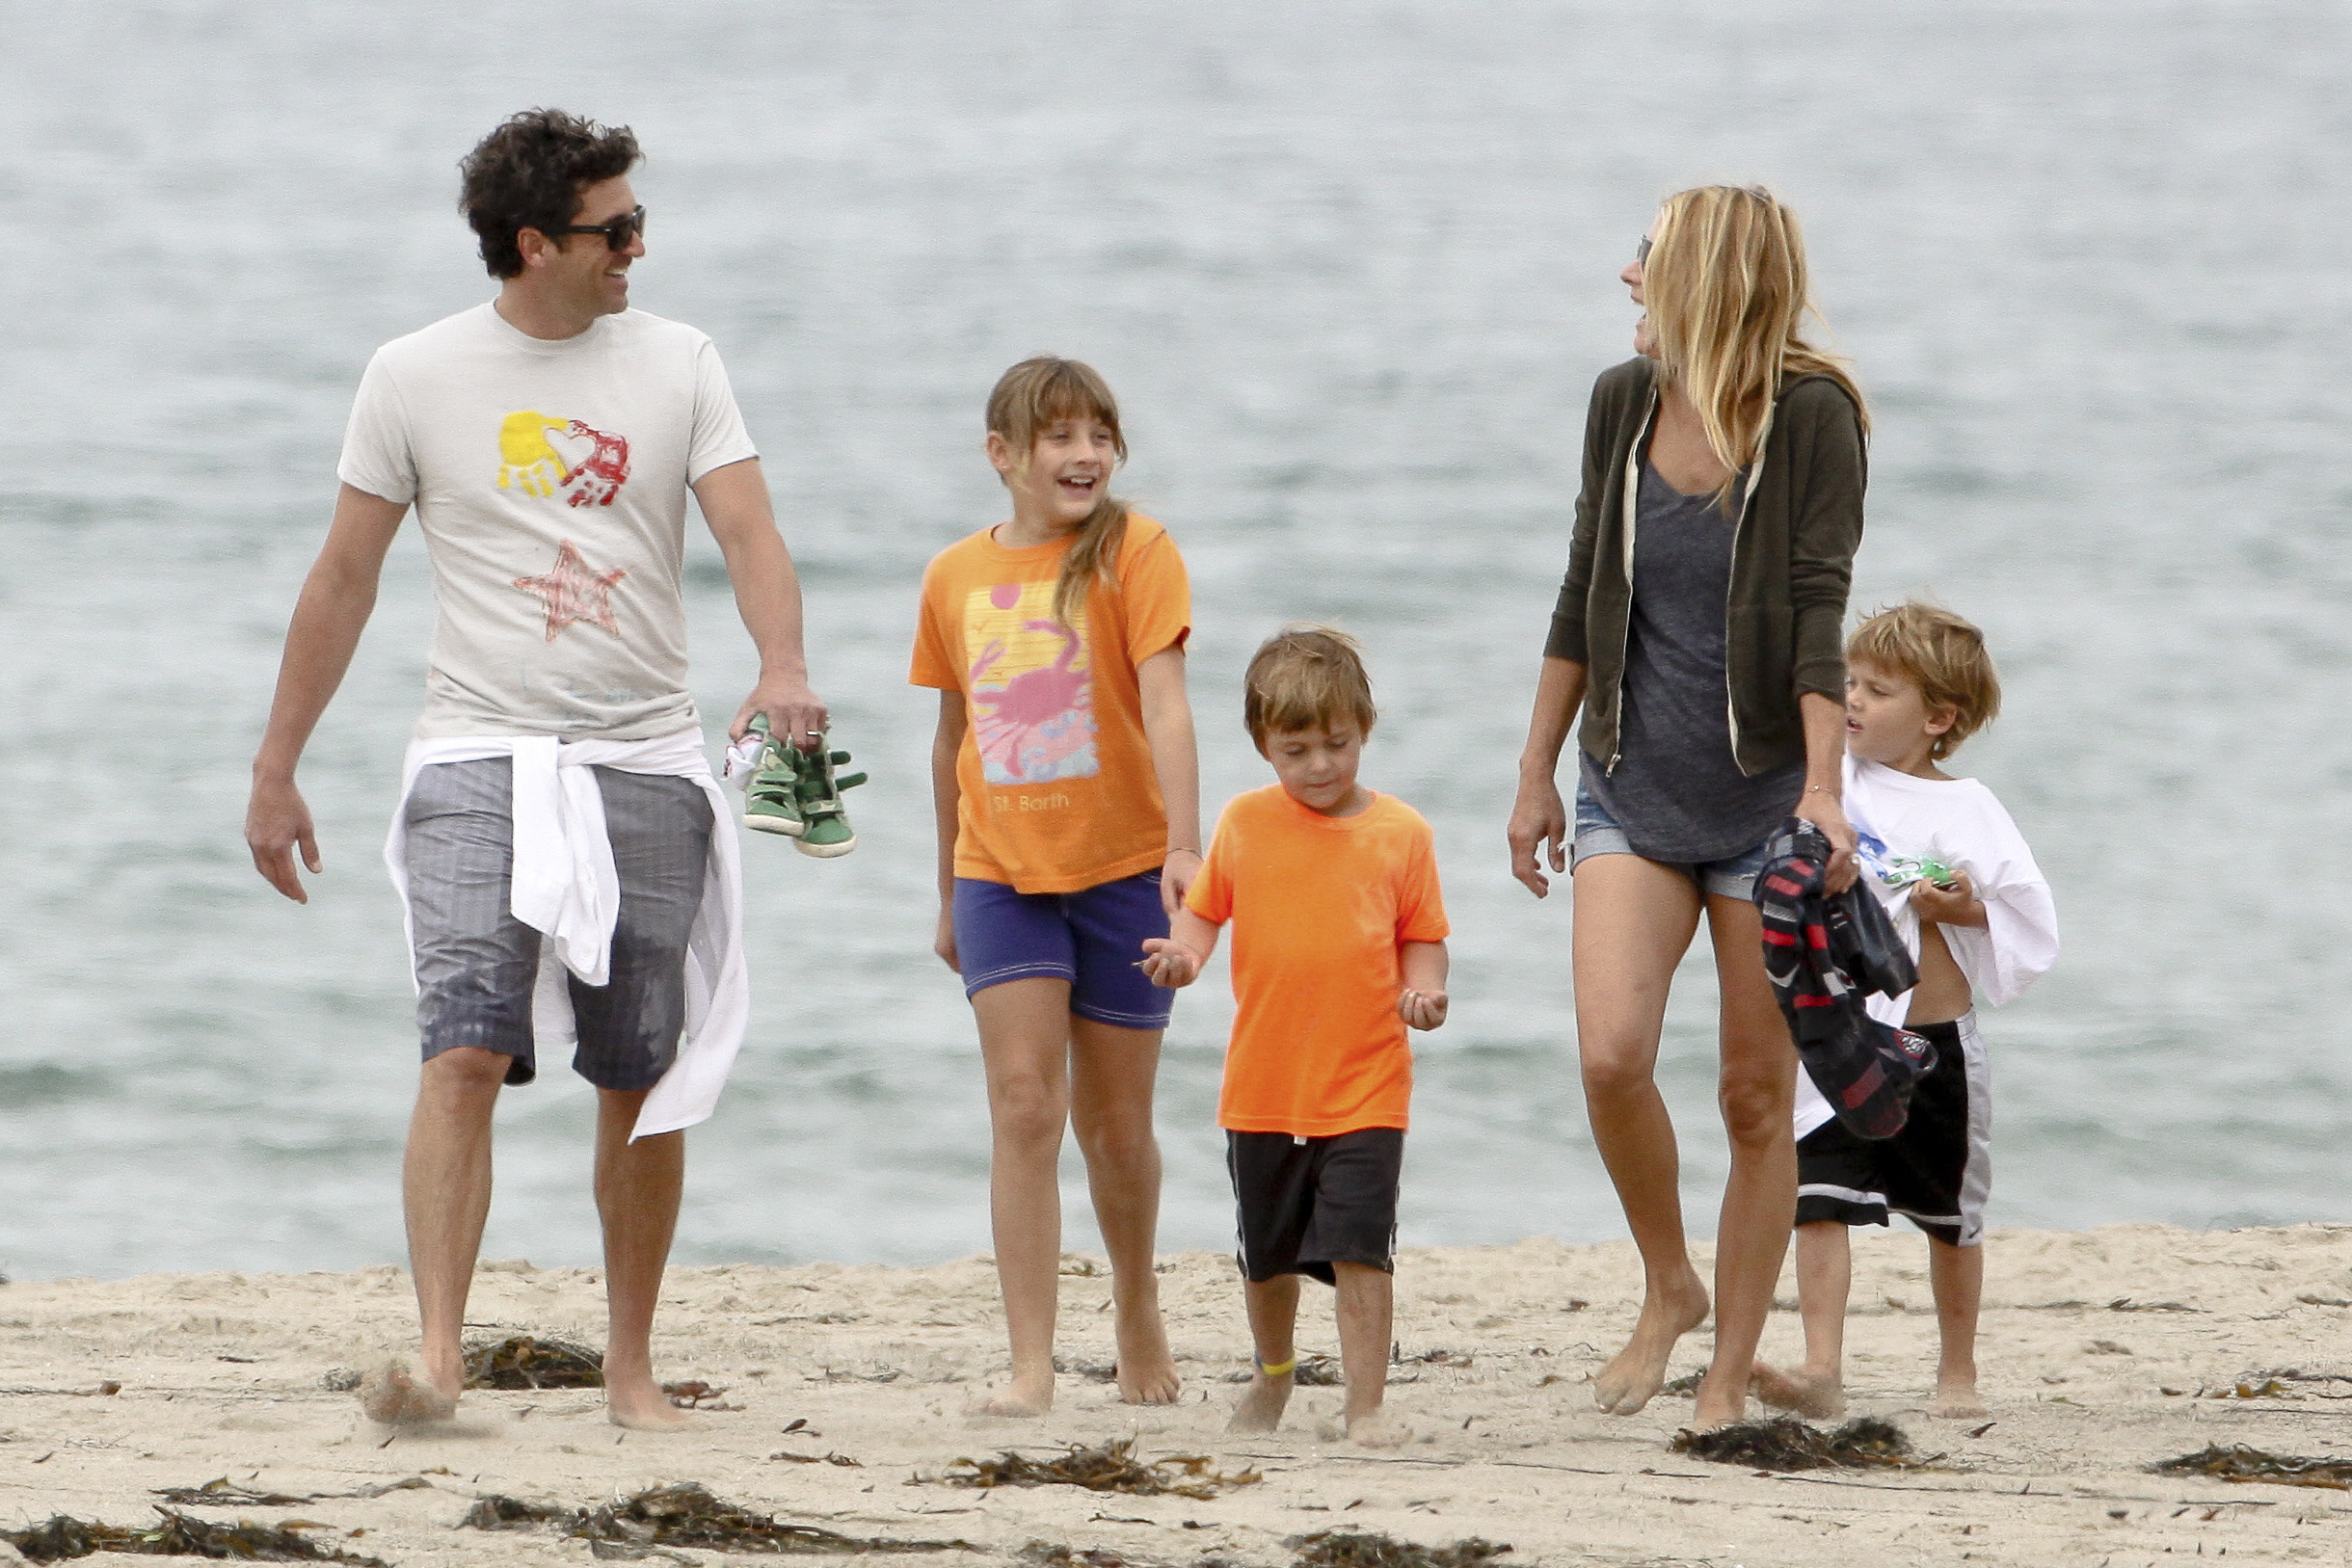 Dempsey family at the beach